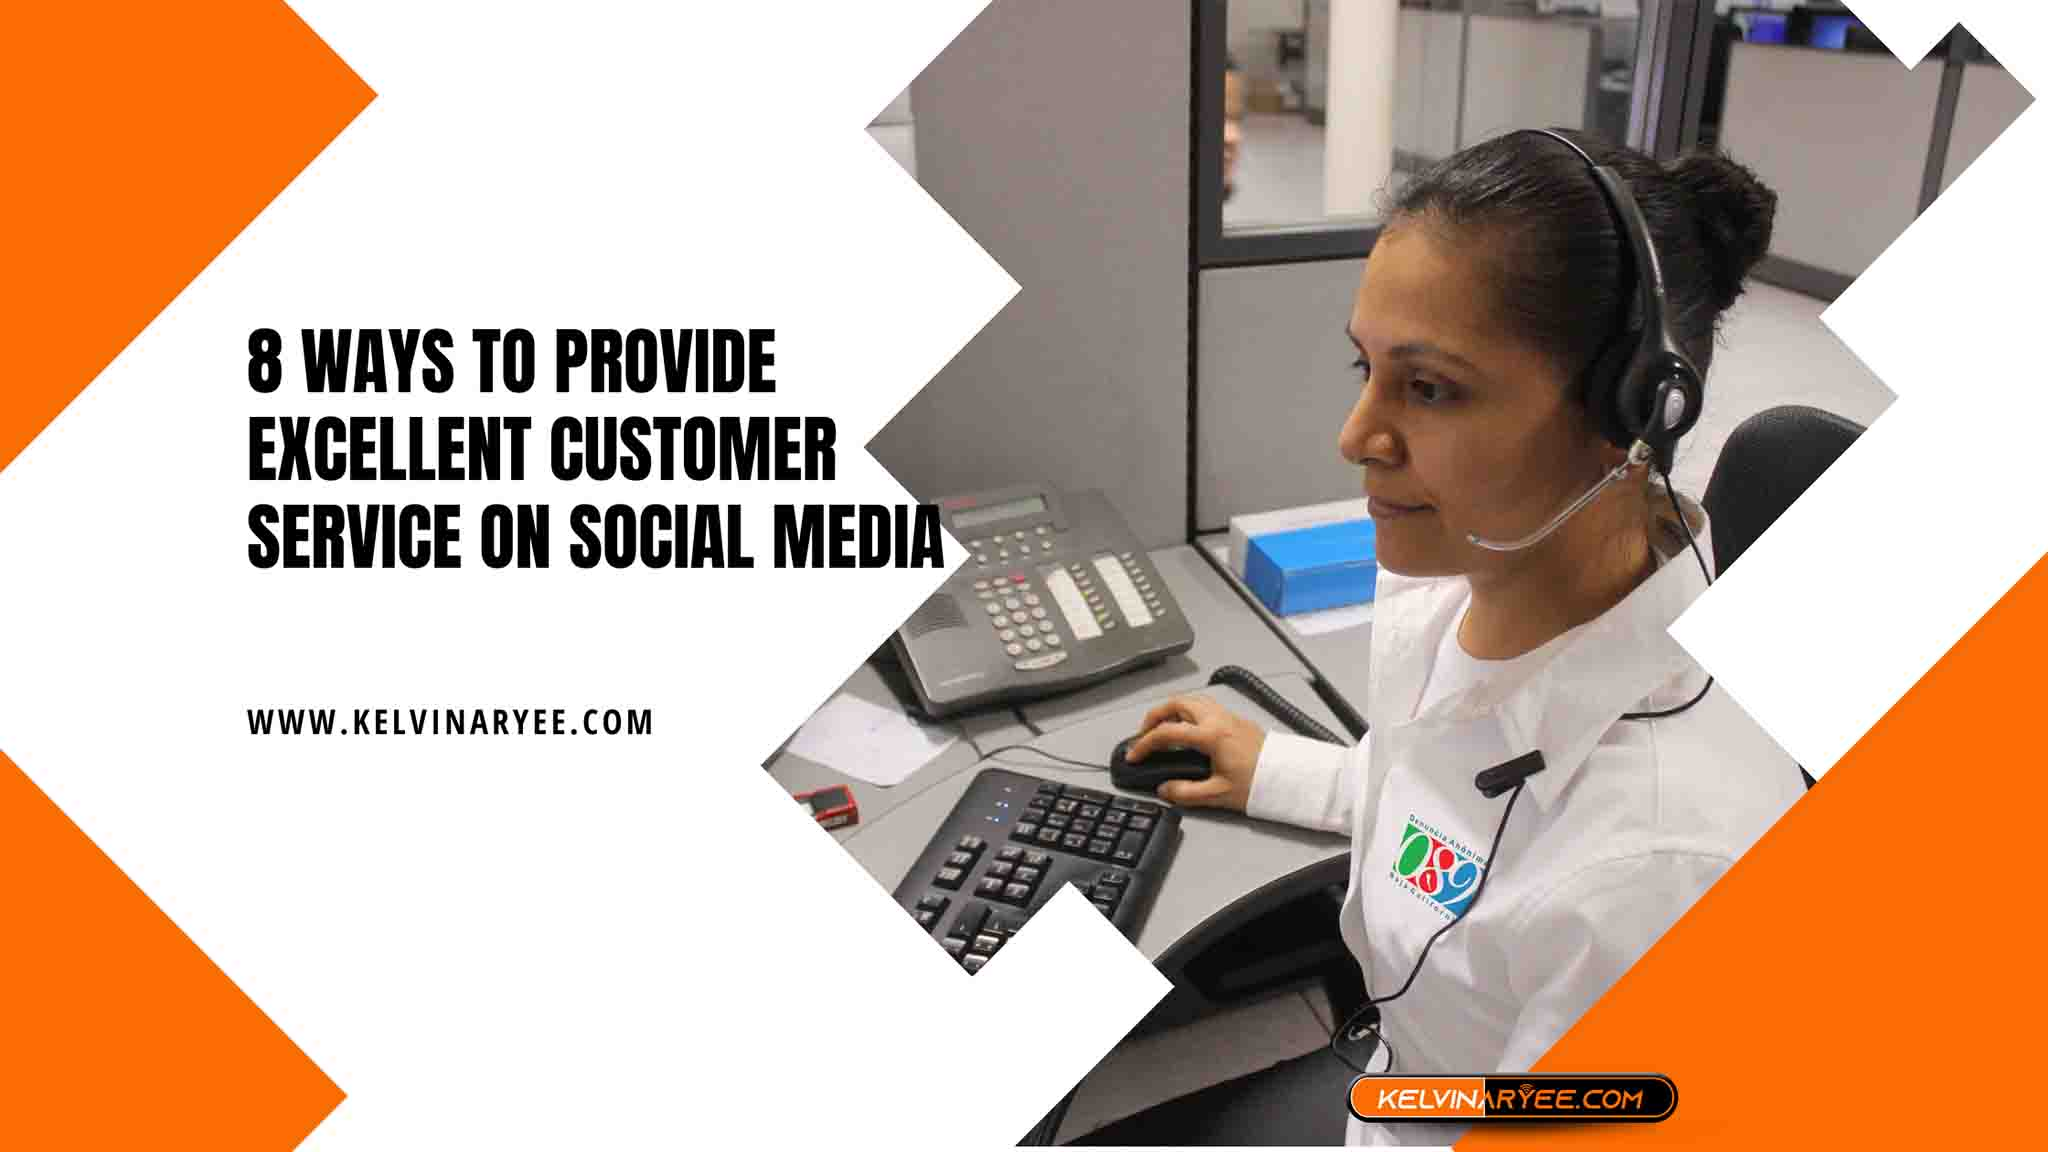 You are currently viewing 8 Ways to Provide Excellent Customer Service on Social Media